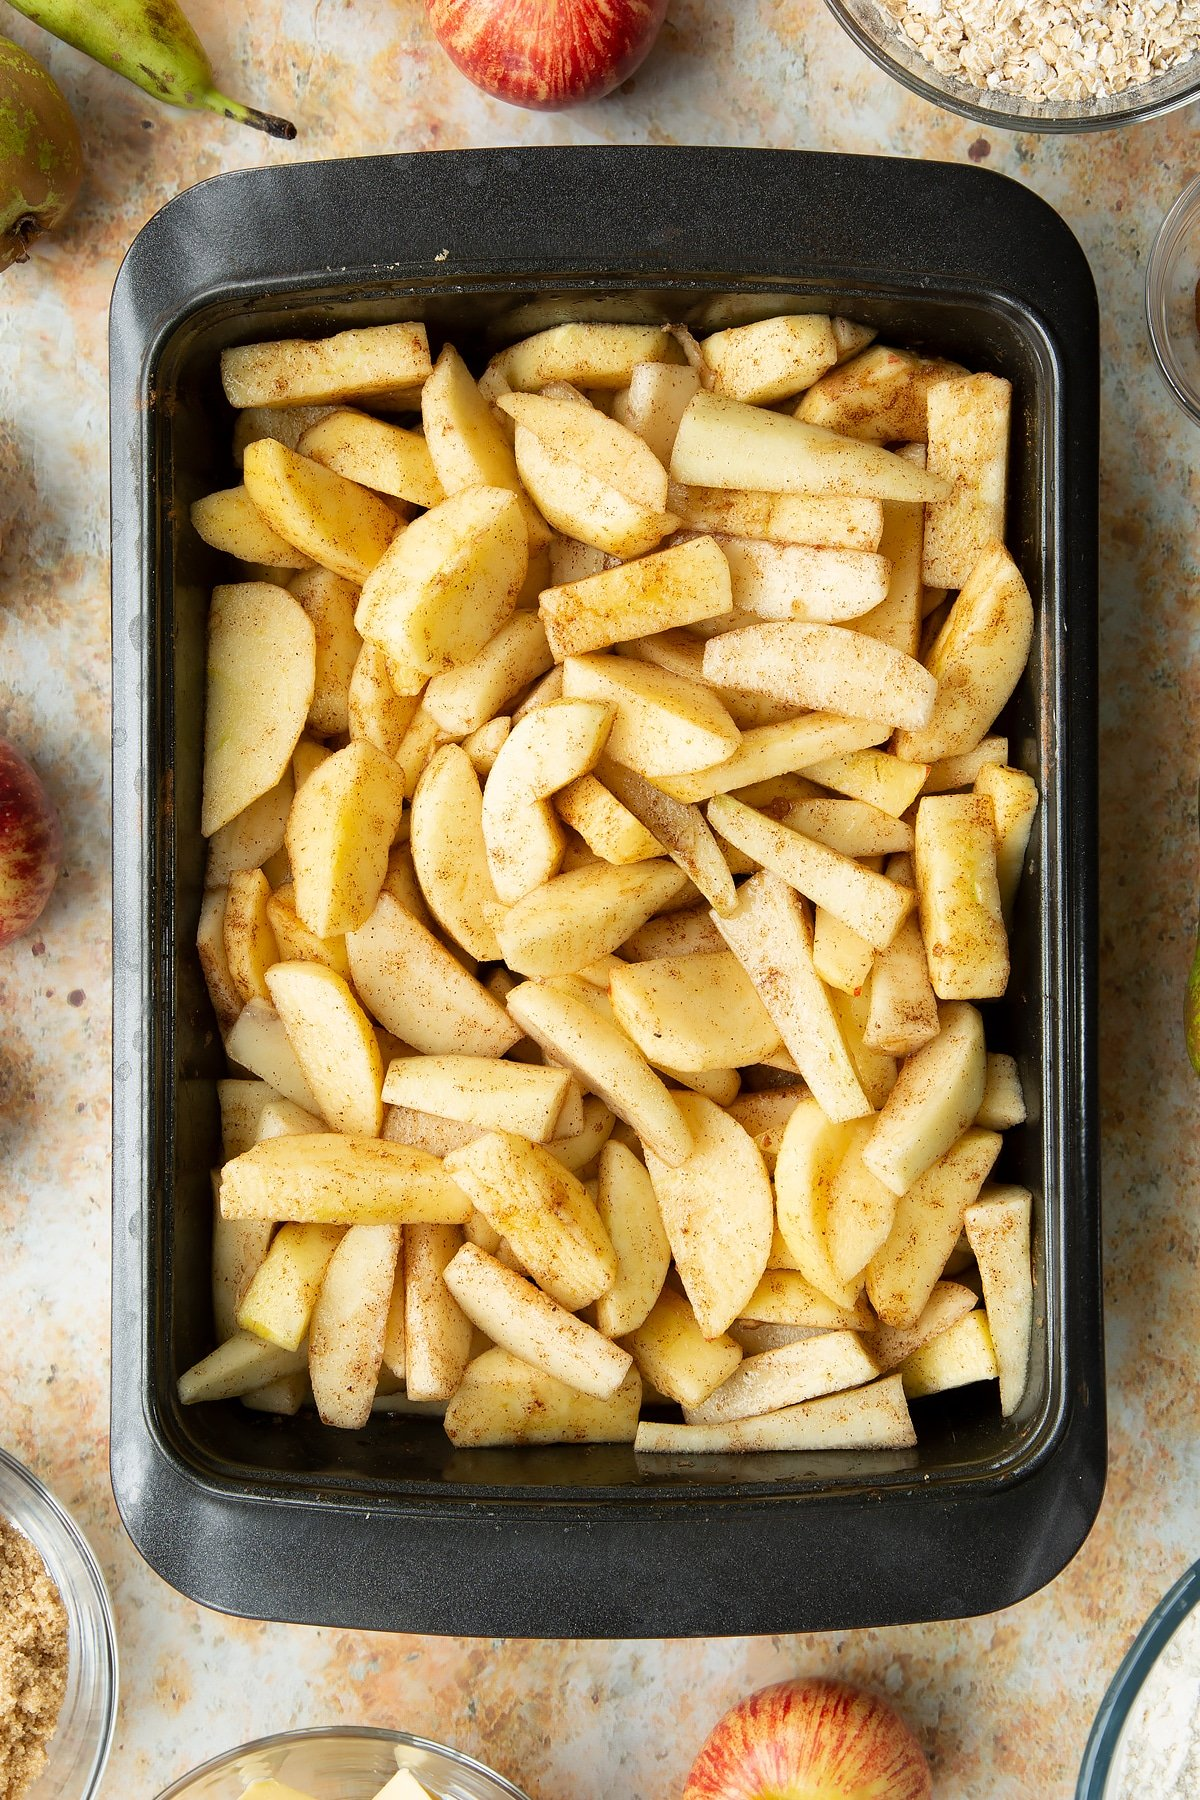 Peeled apple and pear wedges mixed with light brown sugar and cinnamon in a greased tray.